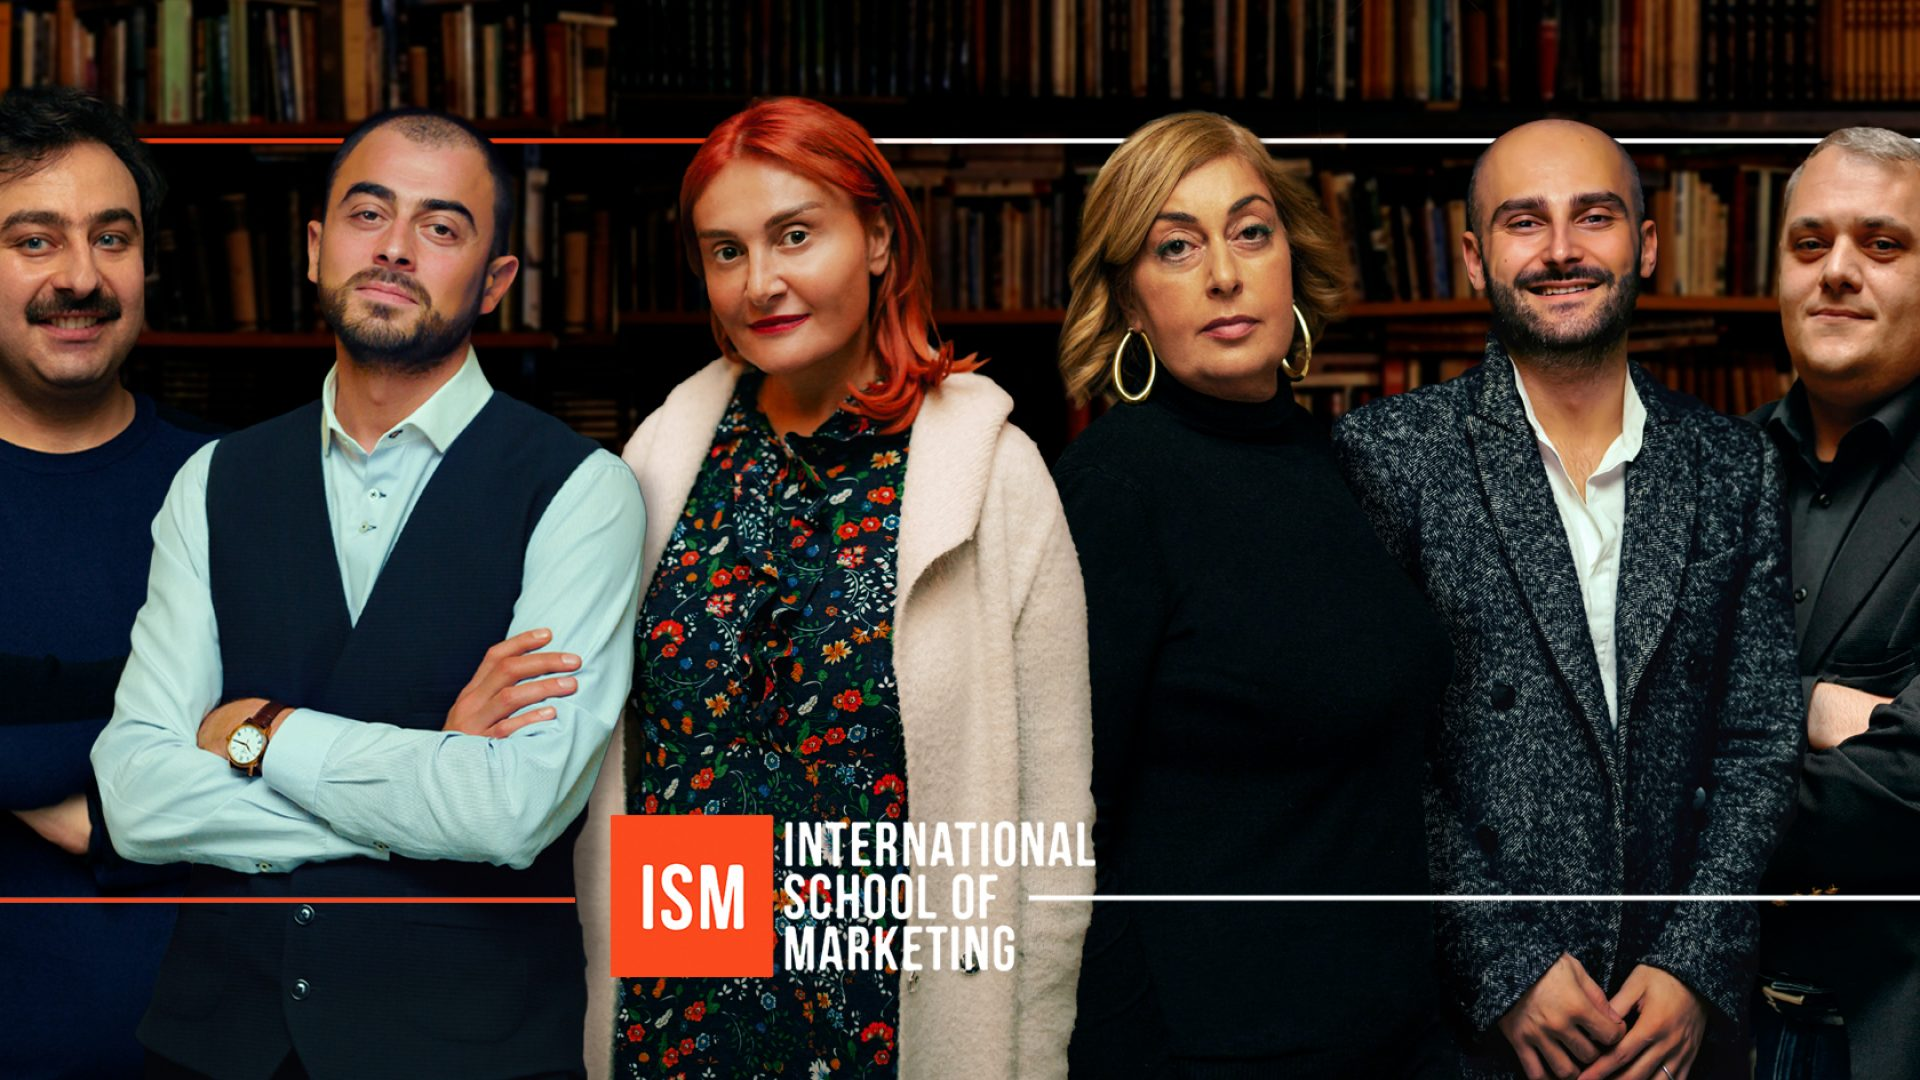 ISM - International School of Marketing